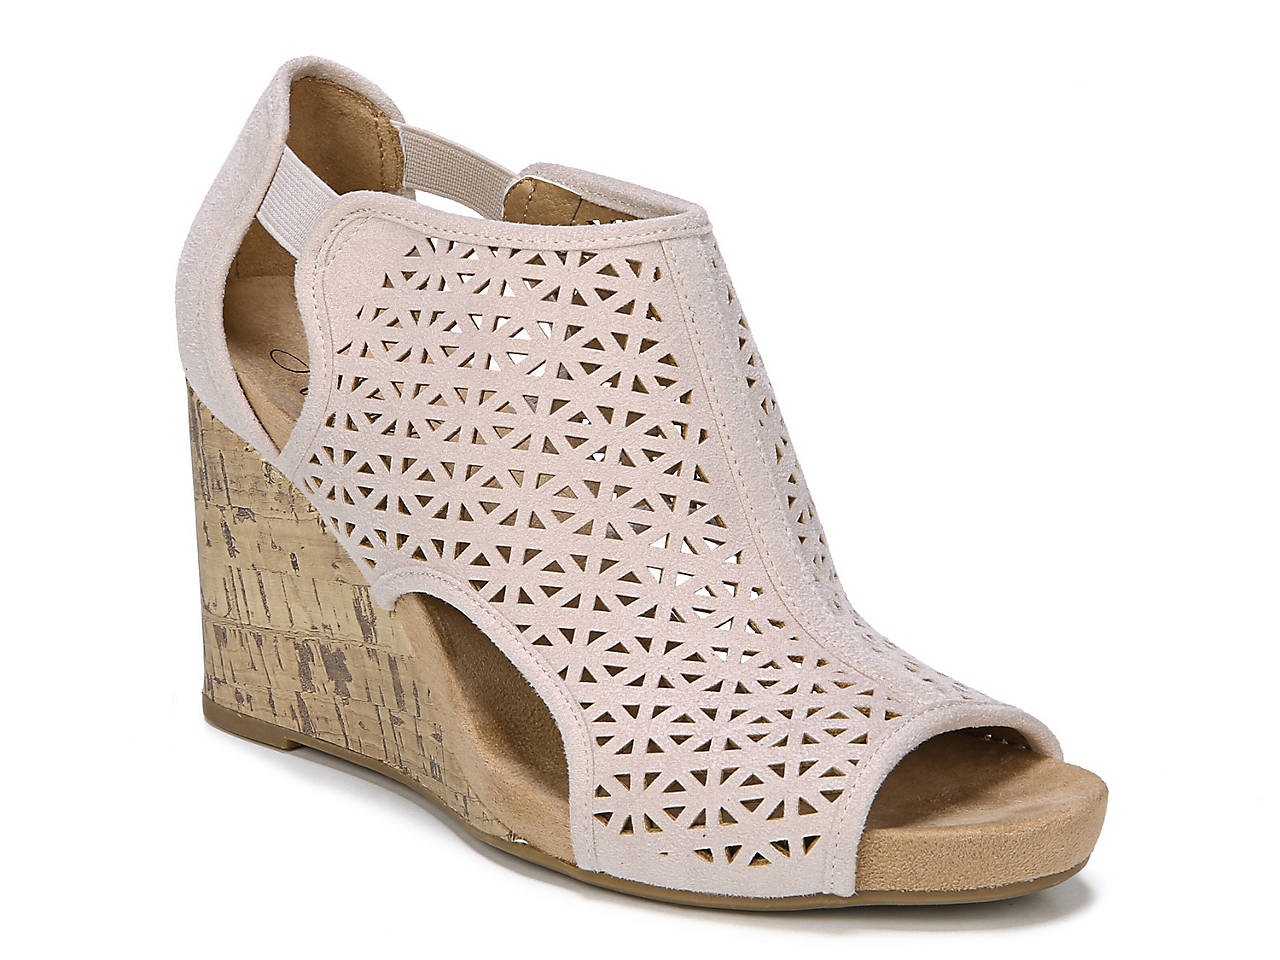 Hinx 2 Wedge Sandal